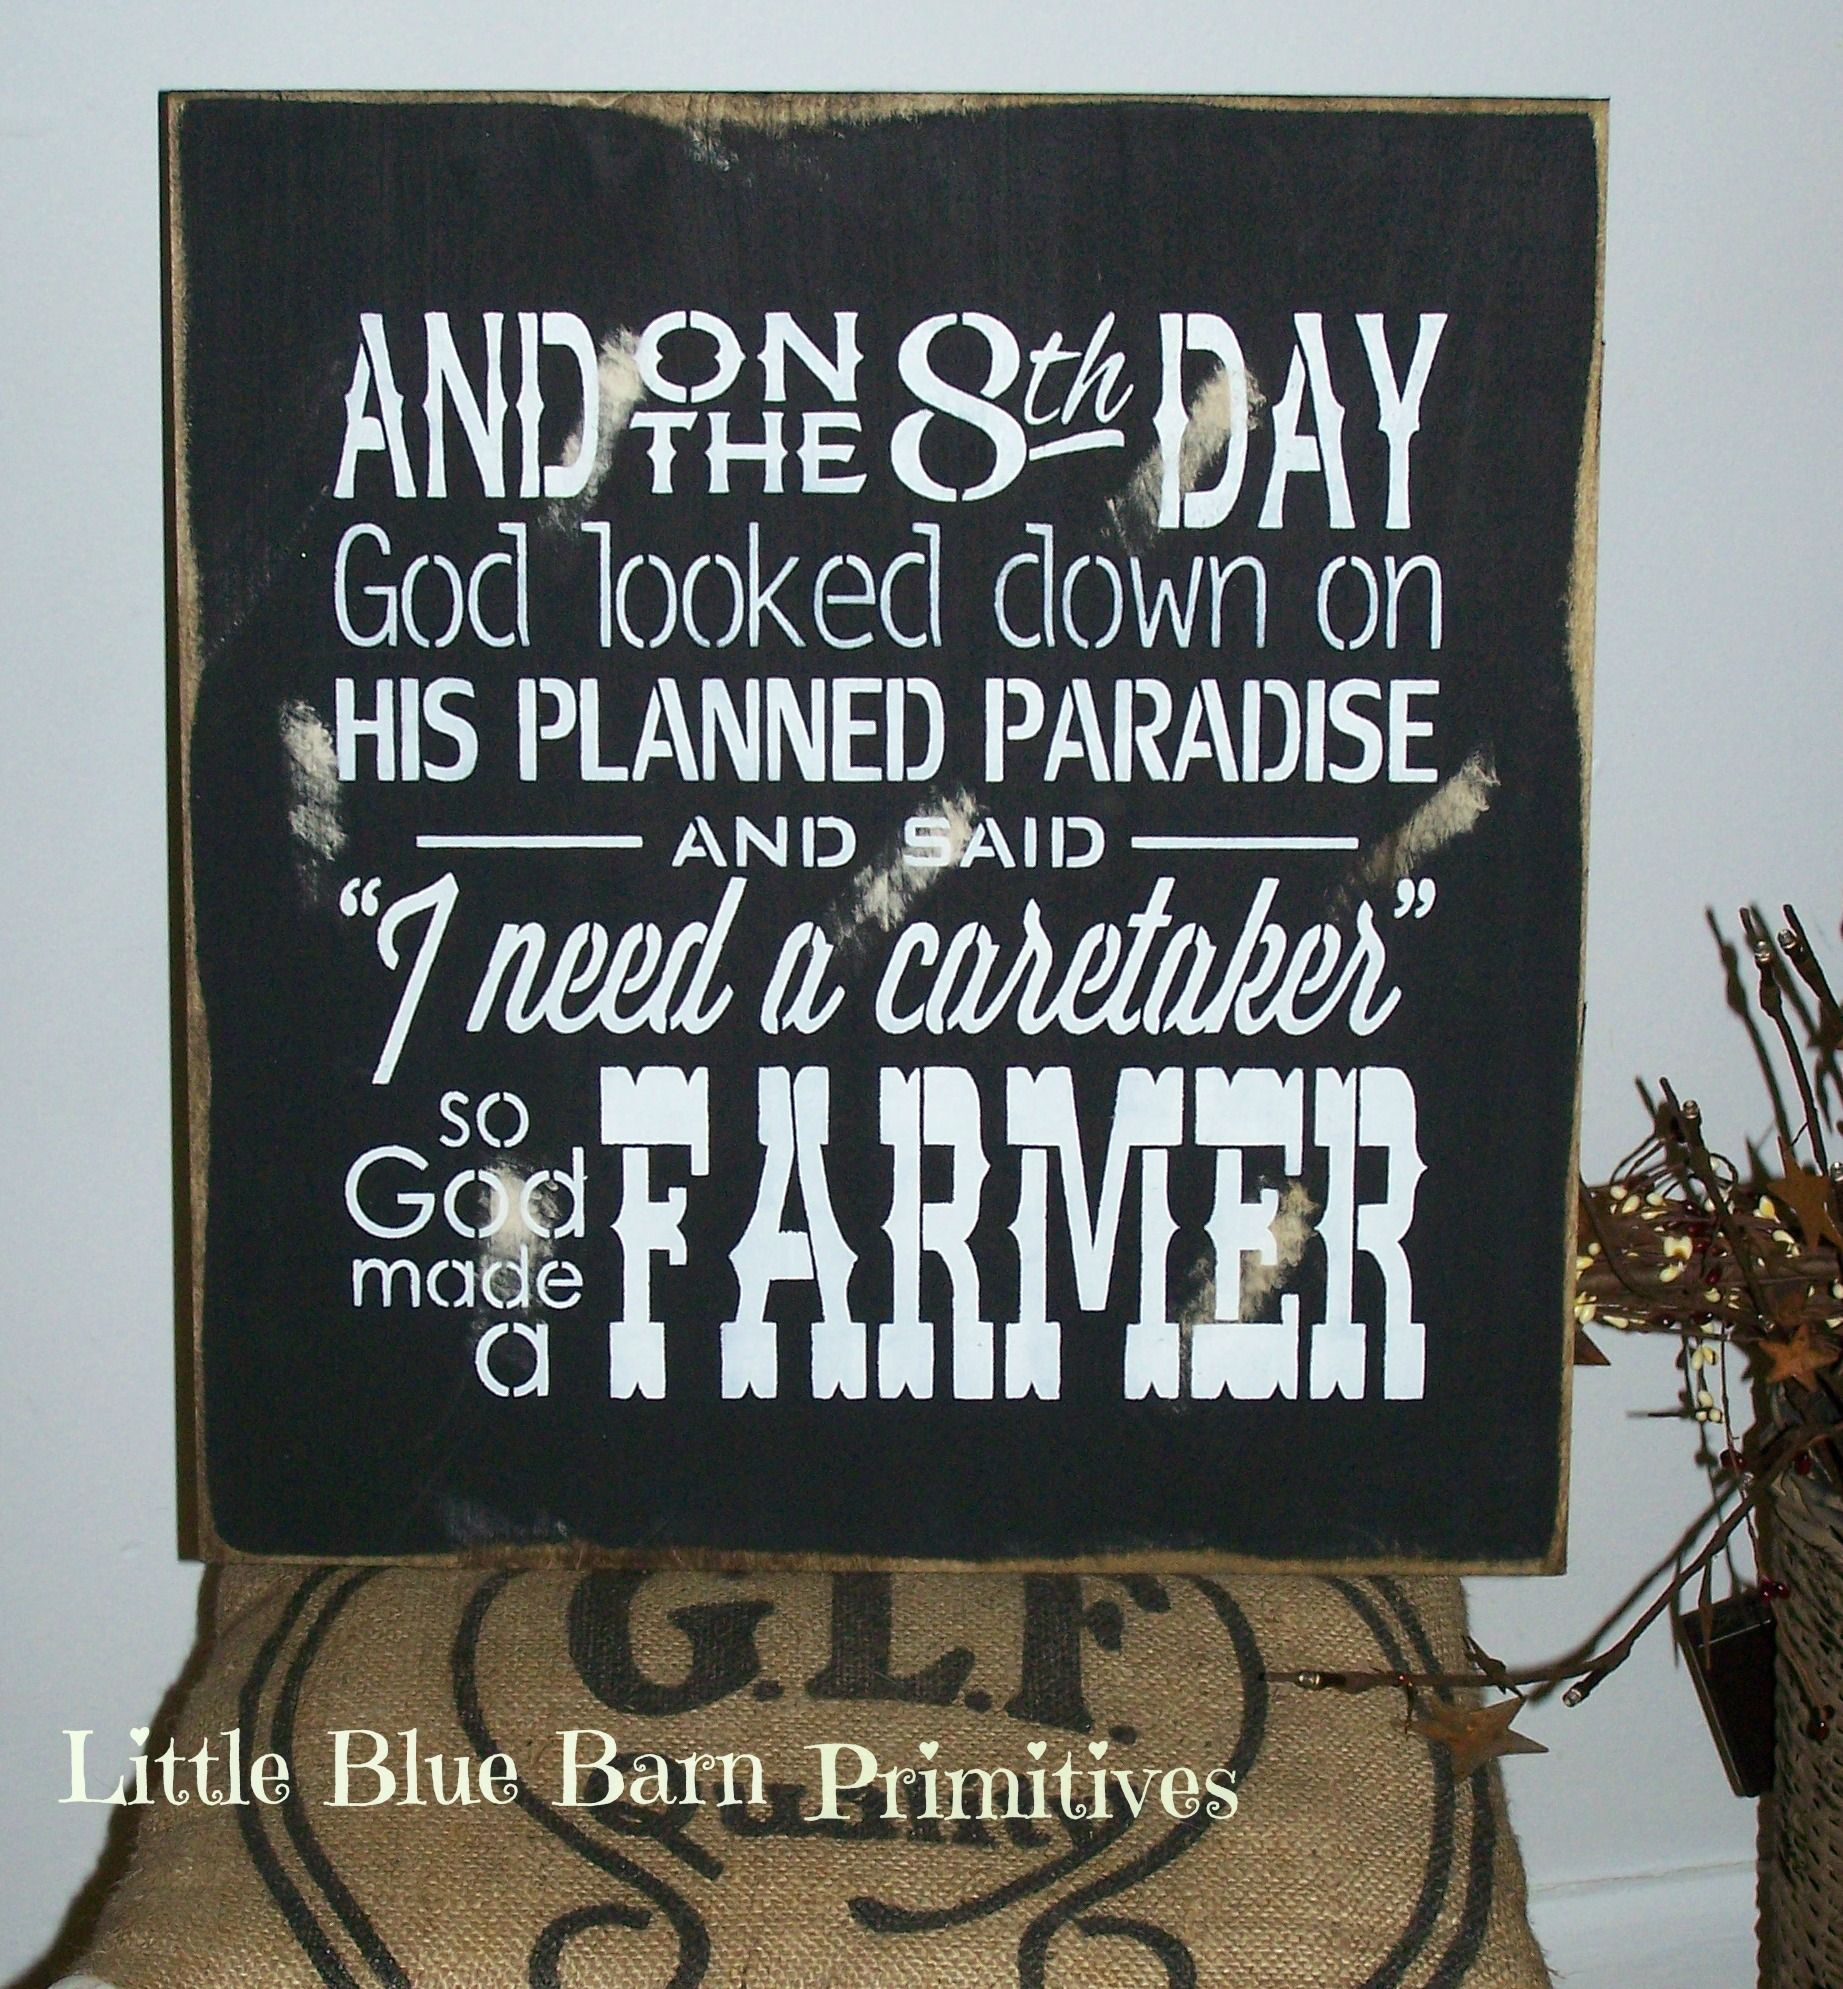 From The Famous Paul Harvey Quote So God Made A Farmer How To Distress Wood Wood Signs Weird Words